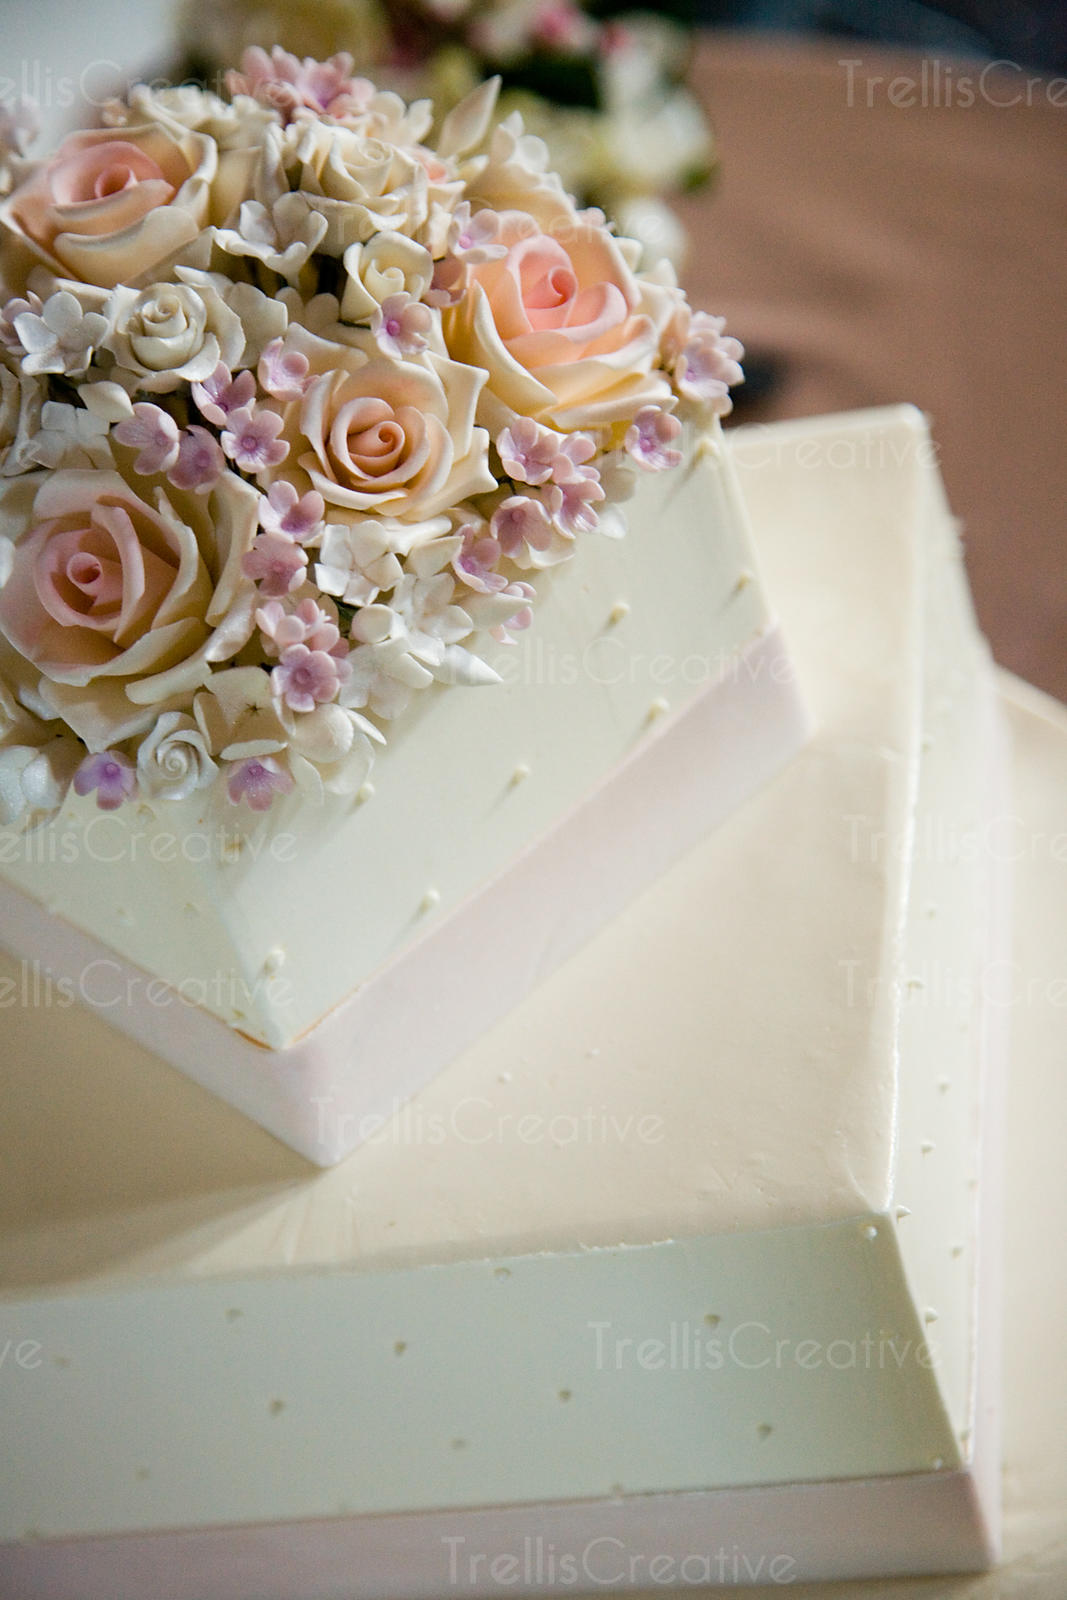 Square wedding cake made of white fondant